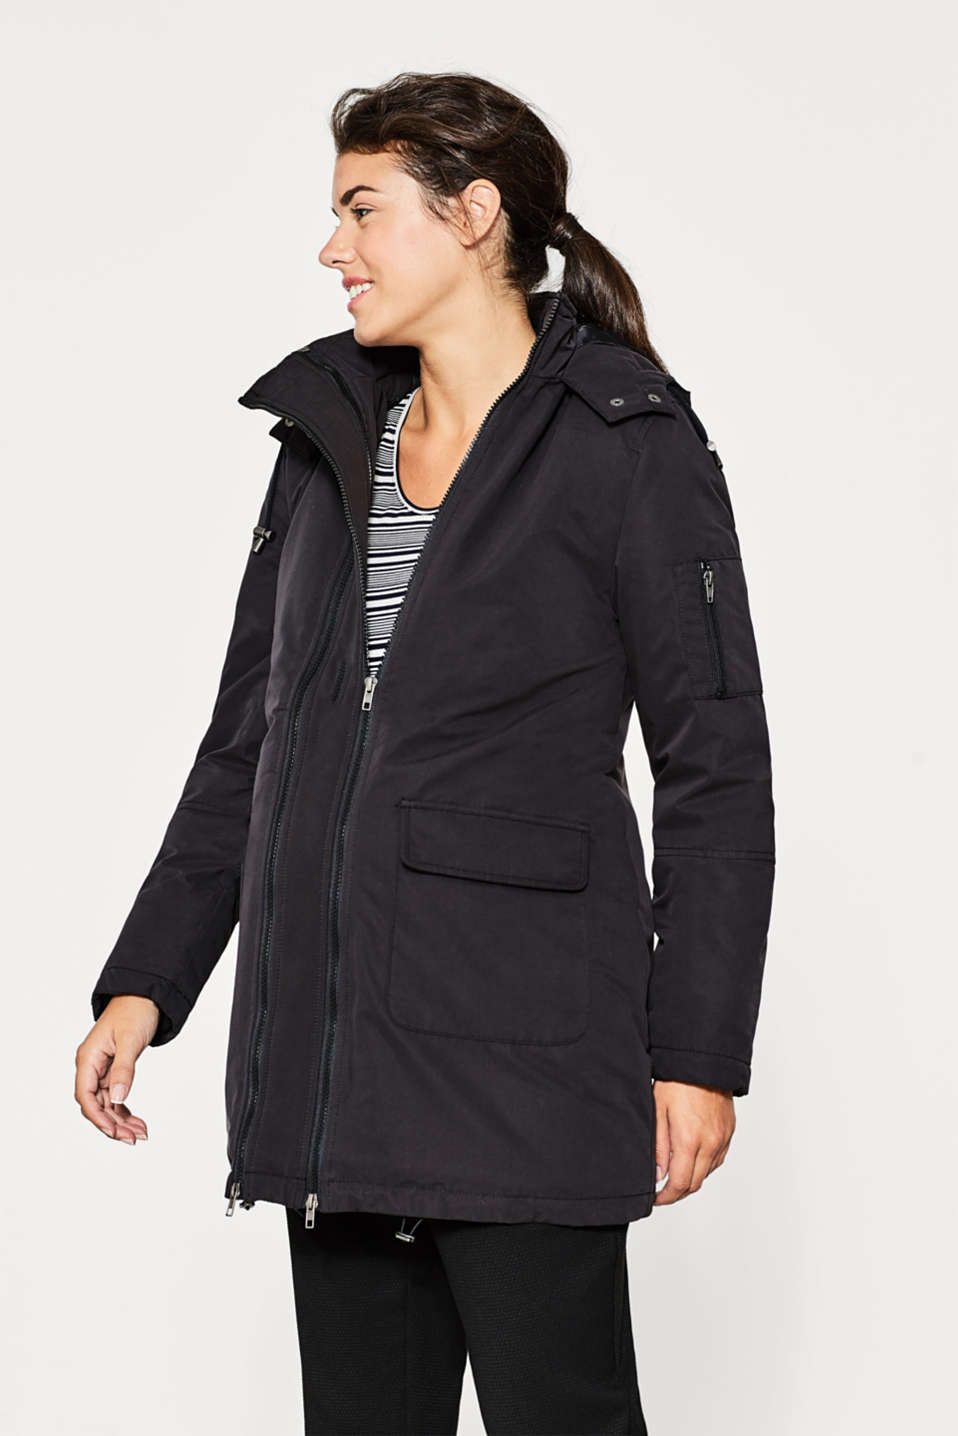 Esprit - Adjustable parka with padding